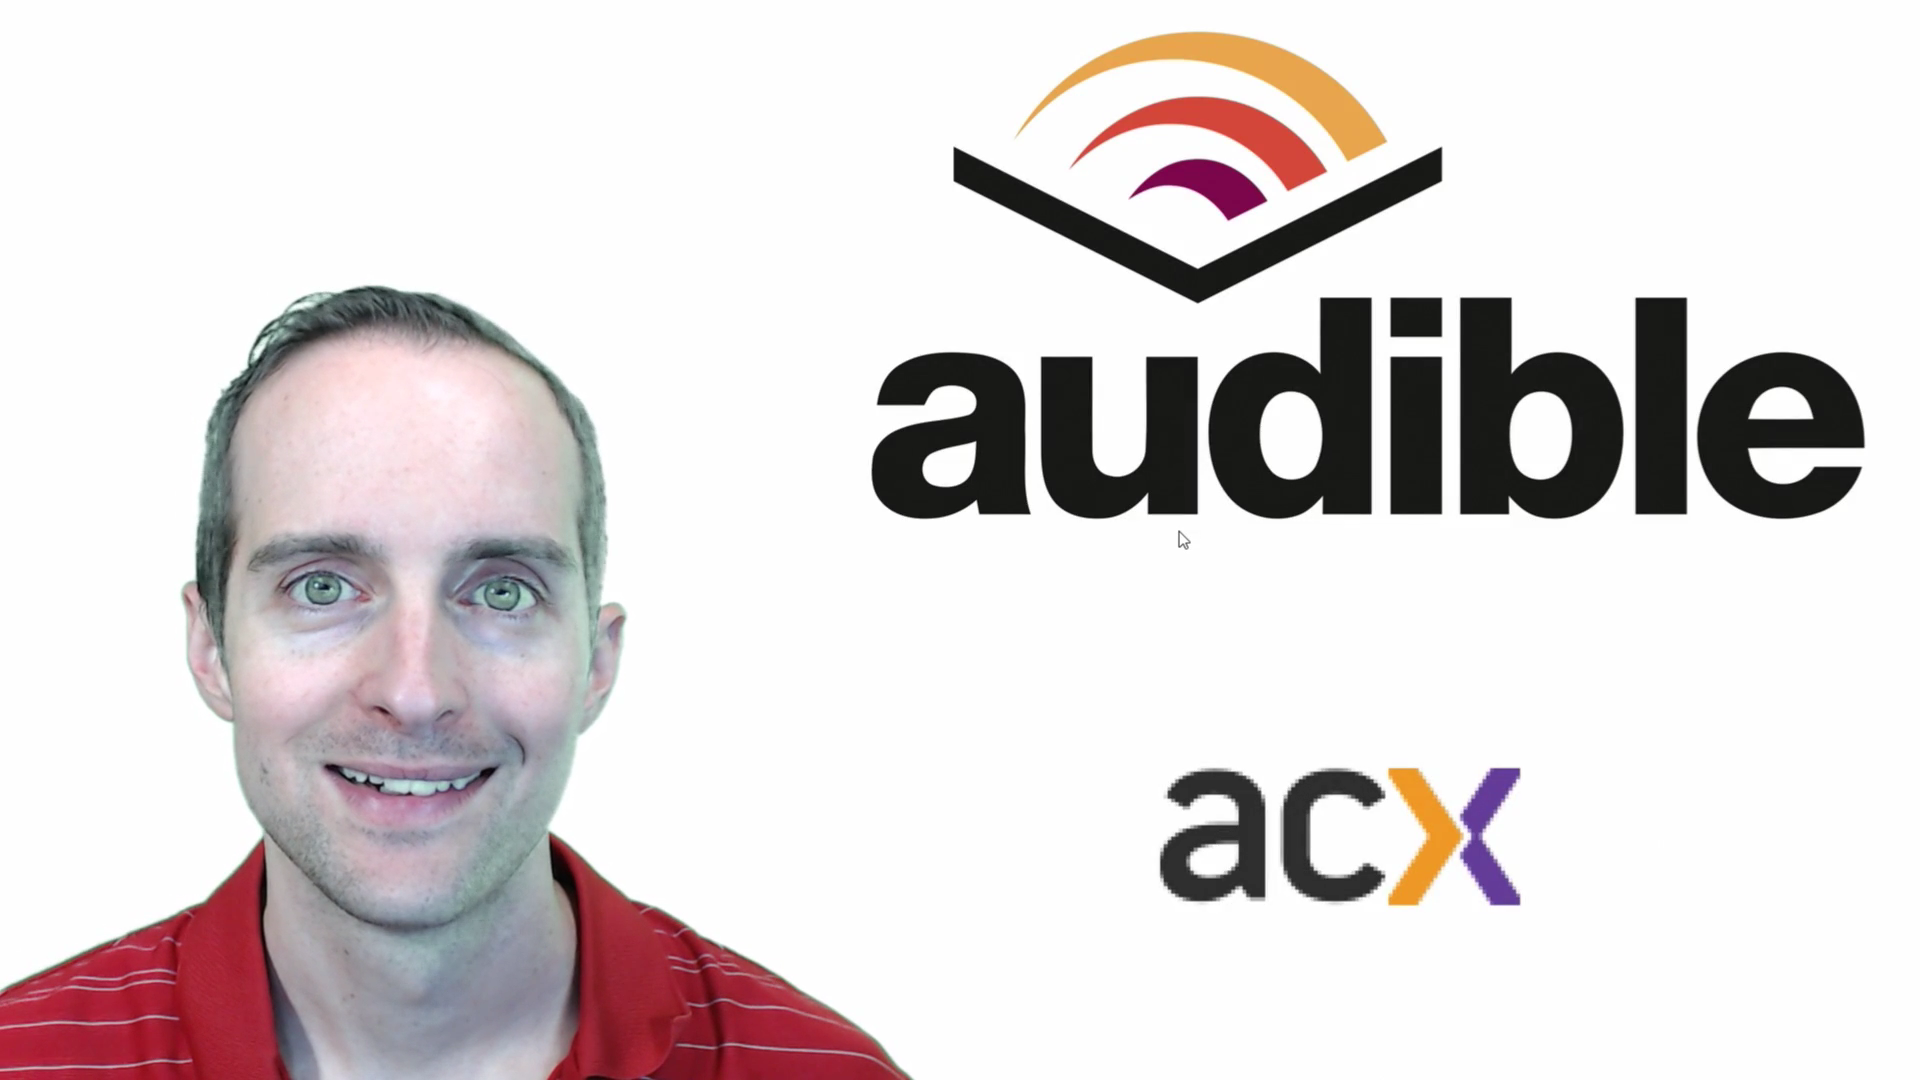 Audio Book Publishing on Audible with ACX!